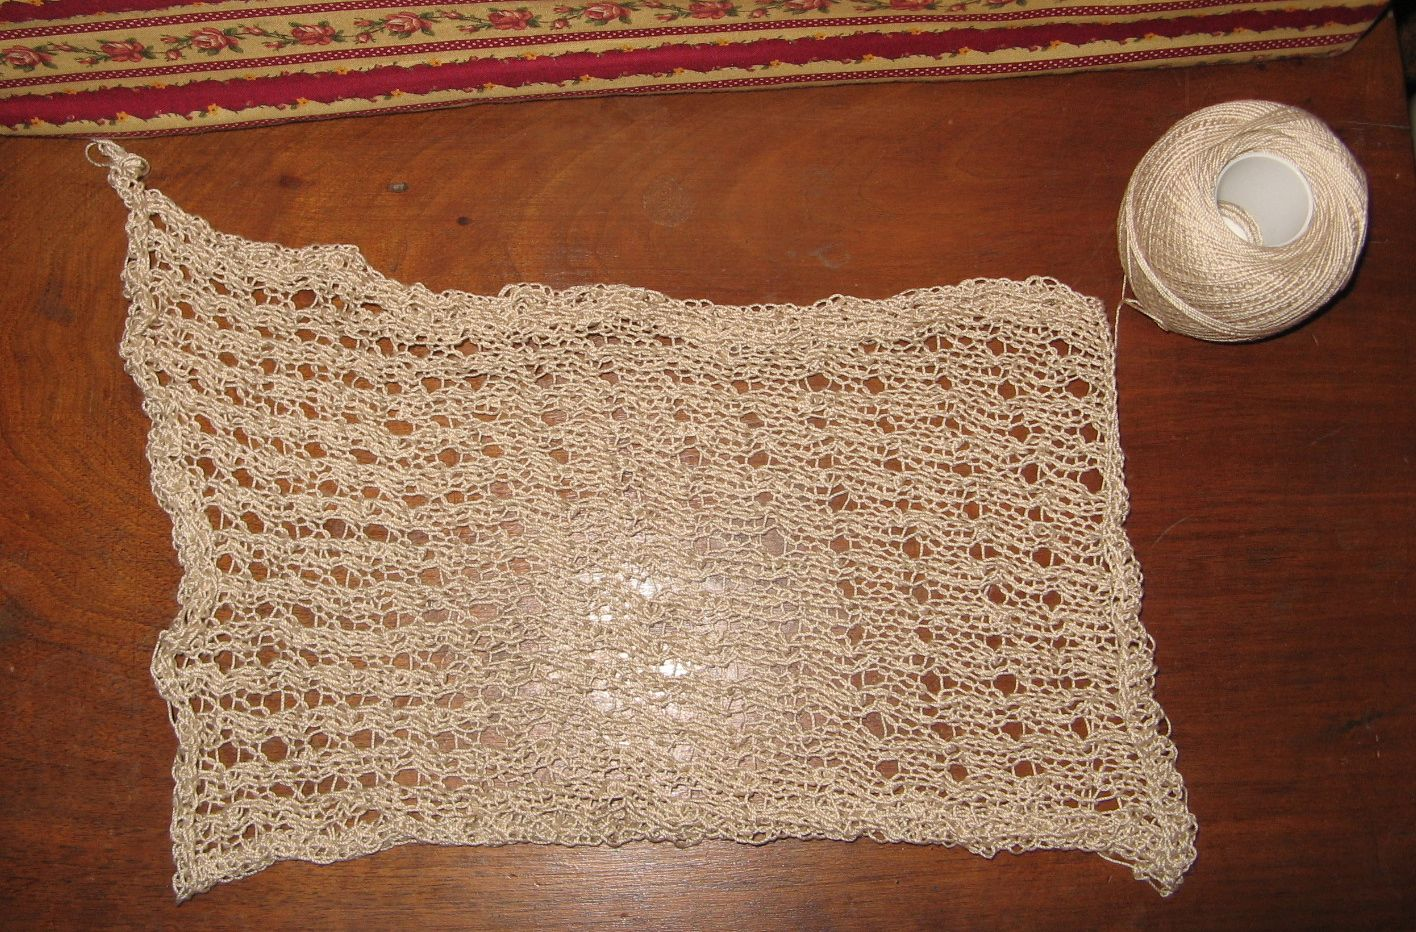 One More Stitch: Reticule or Knitting Bag